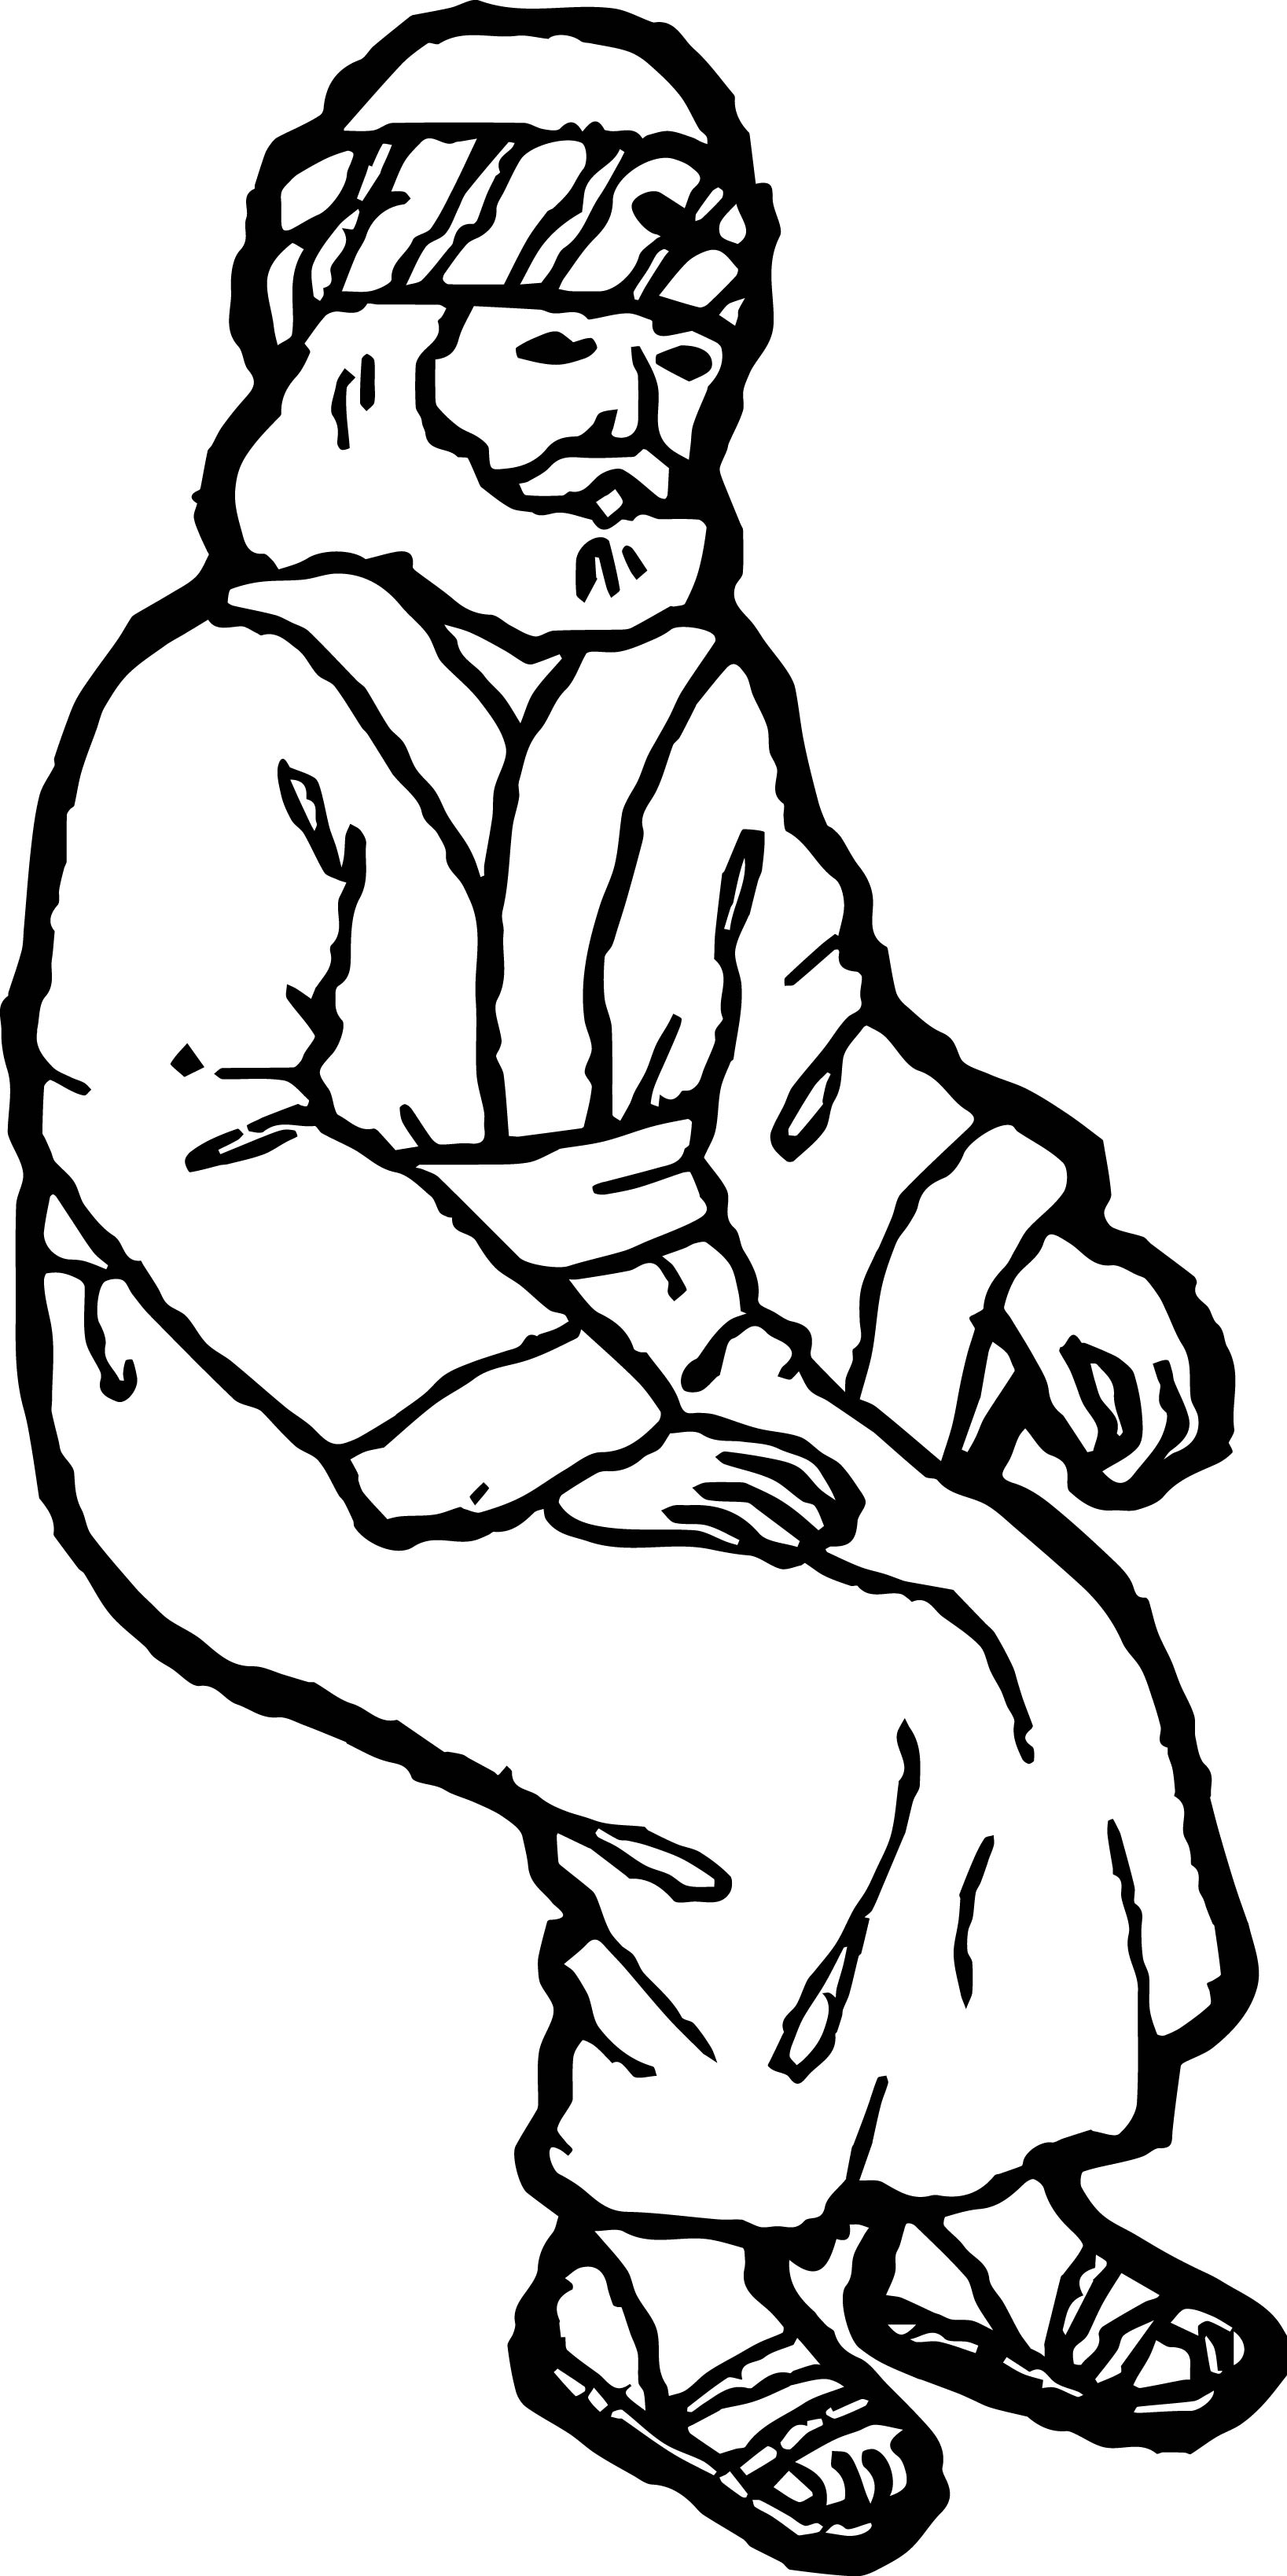 zacchaeus coloring page - staying zacchaeus jesus coloring page